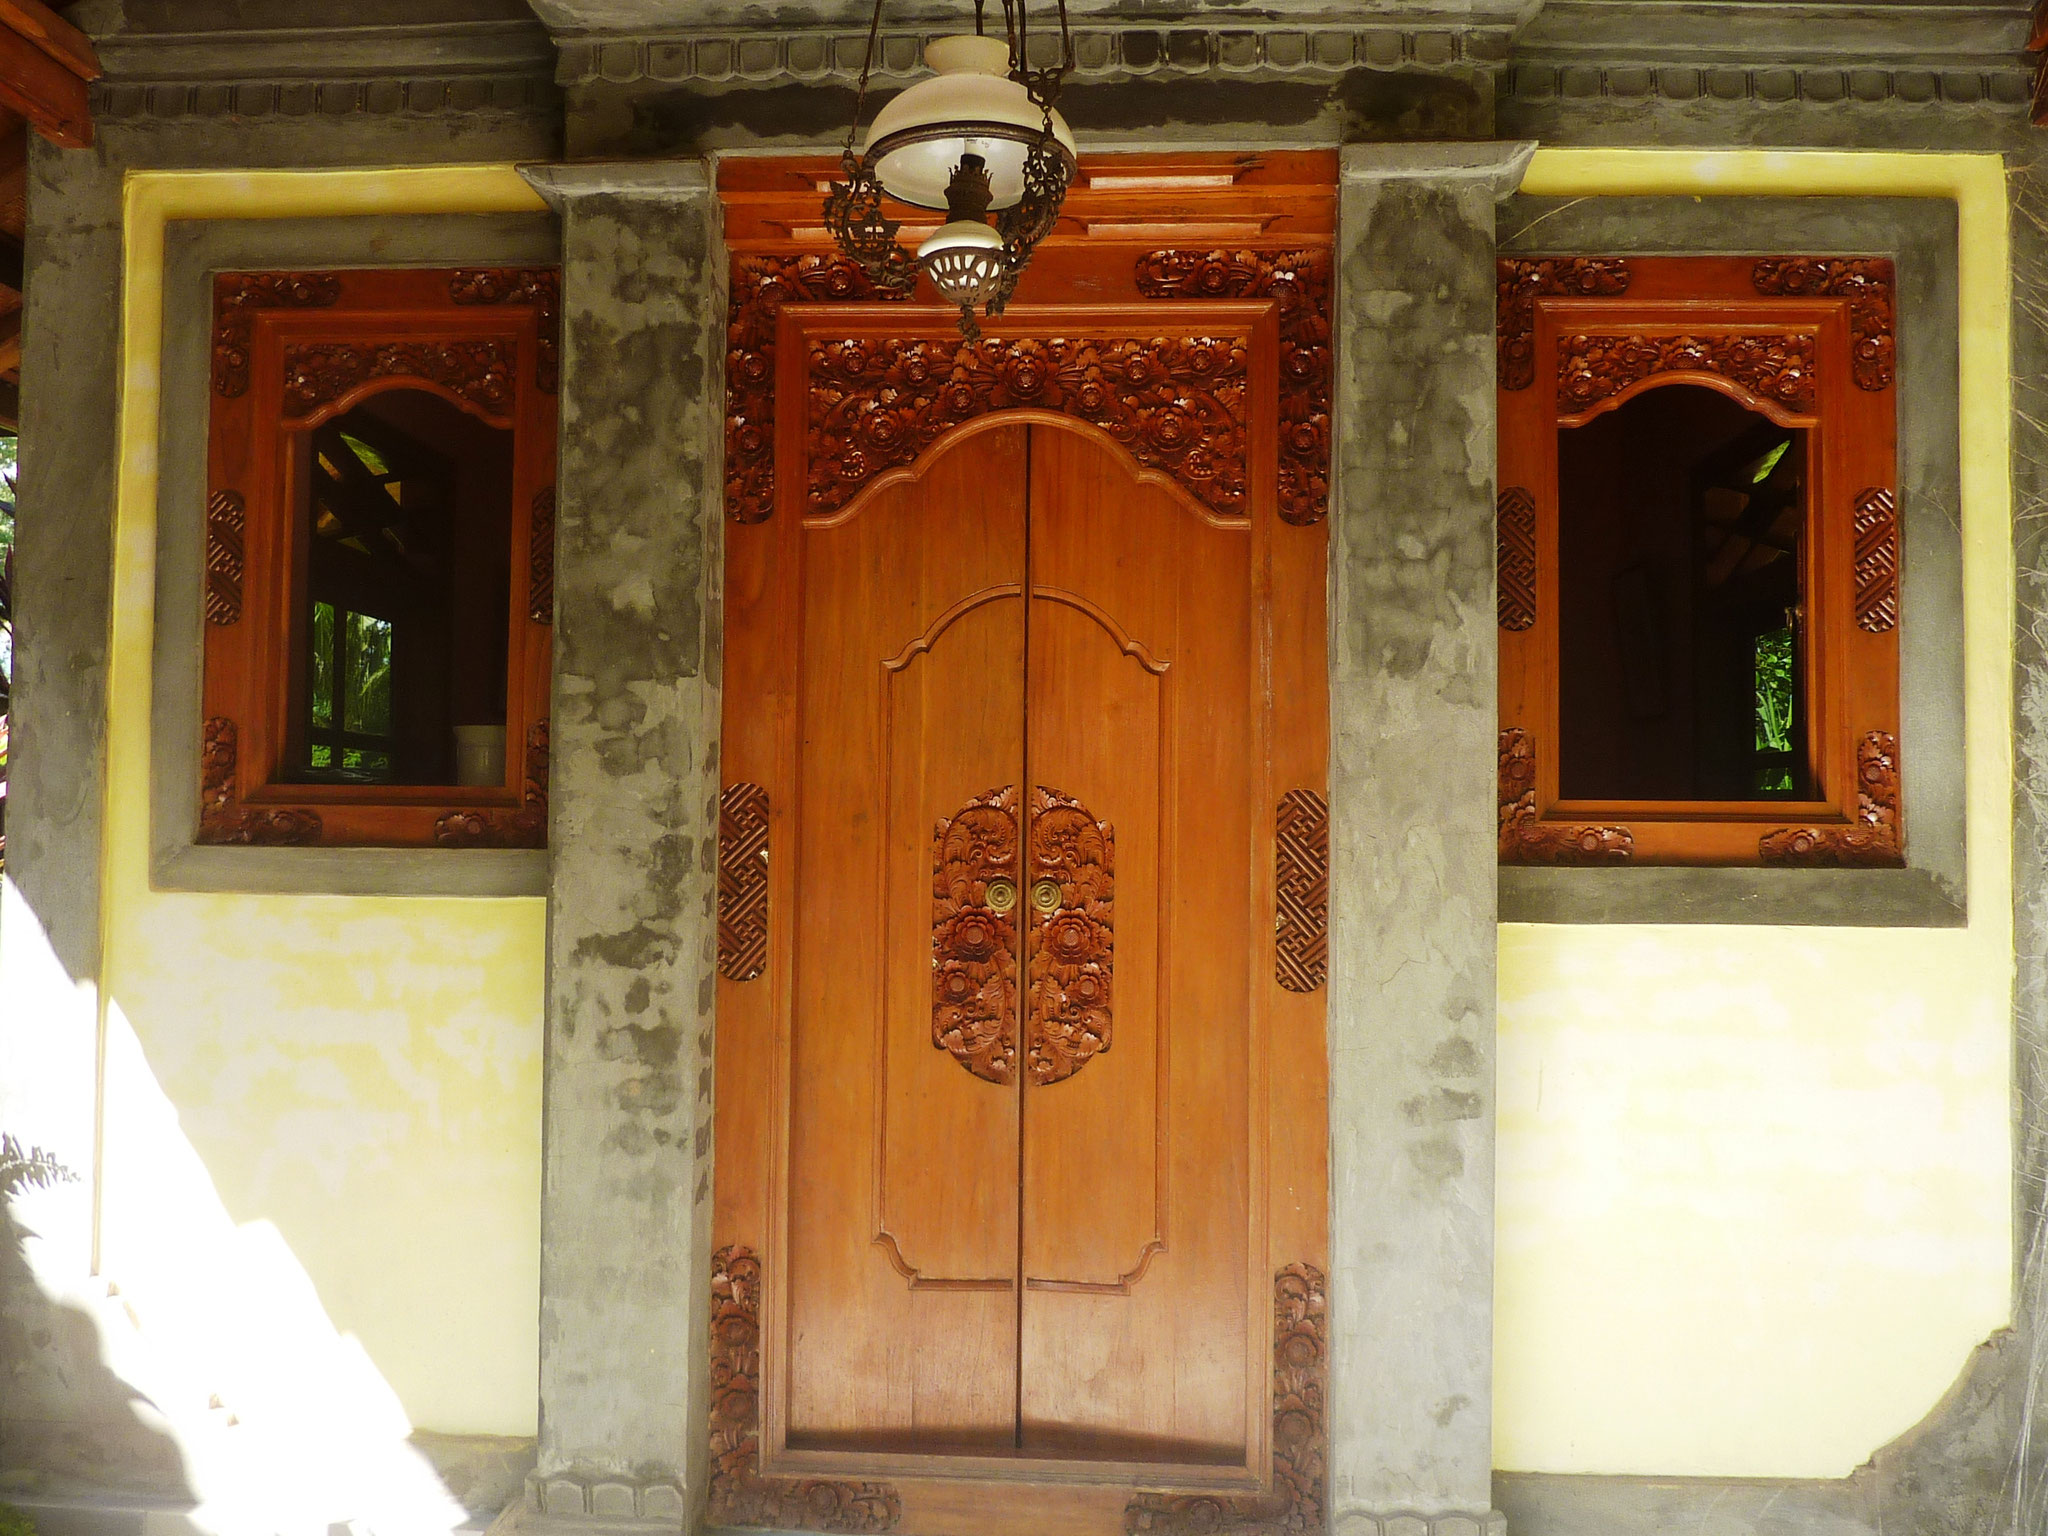 balinese wooden door and windows